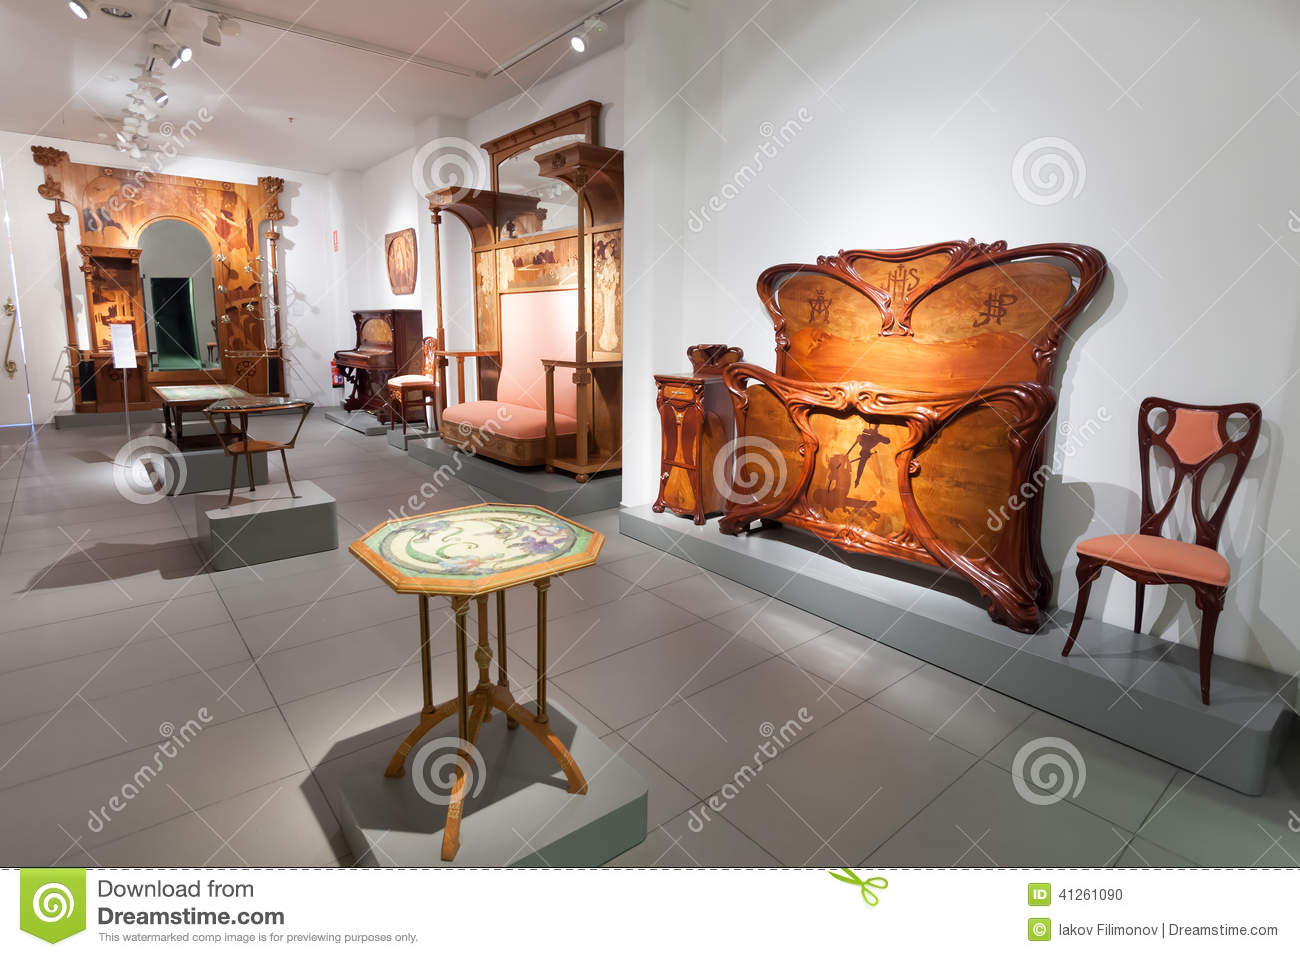 https://thumbs.dreamstime.com/z/furniture-interior-museum-catalan-modernisme-barcelona-spain-january-barcelona-catalonia-41261090.jpg